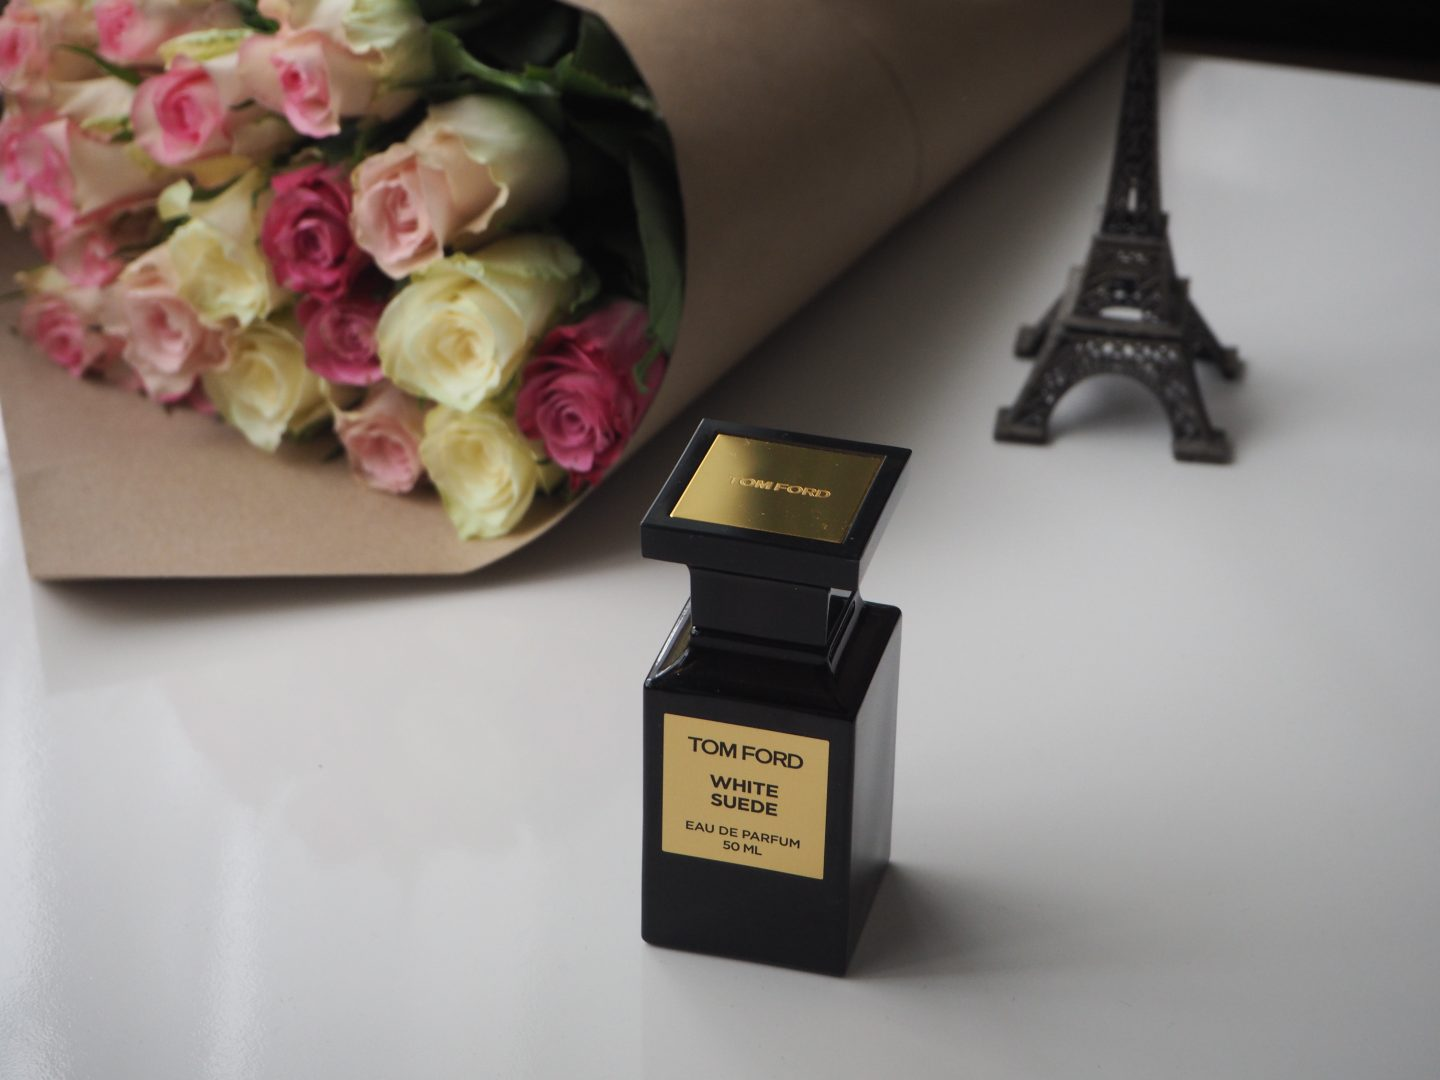 Finding your next scent love